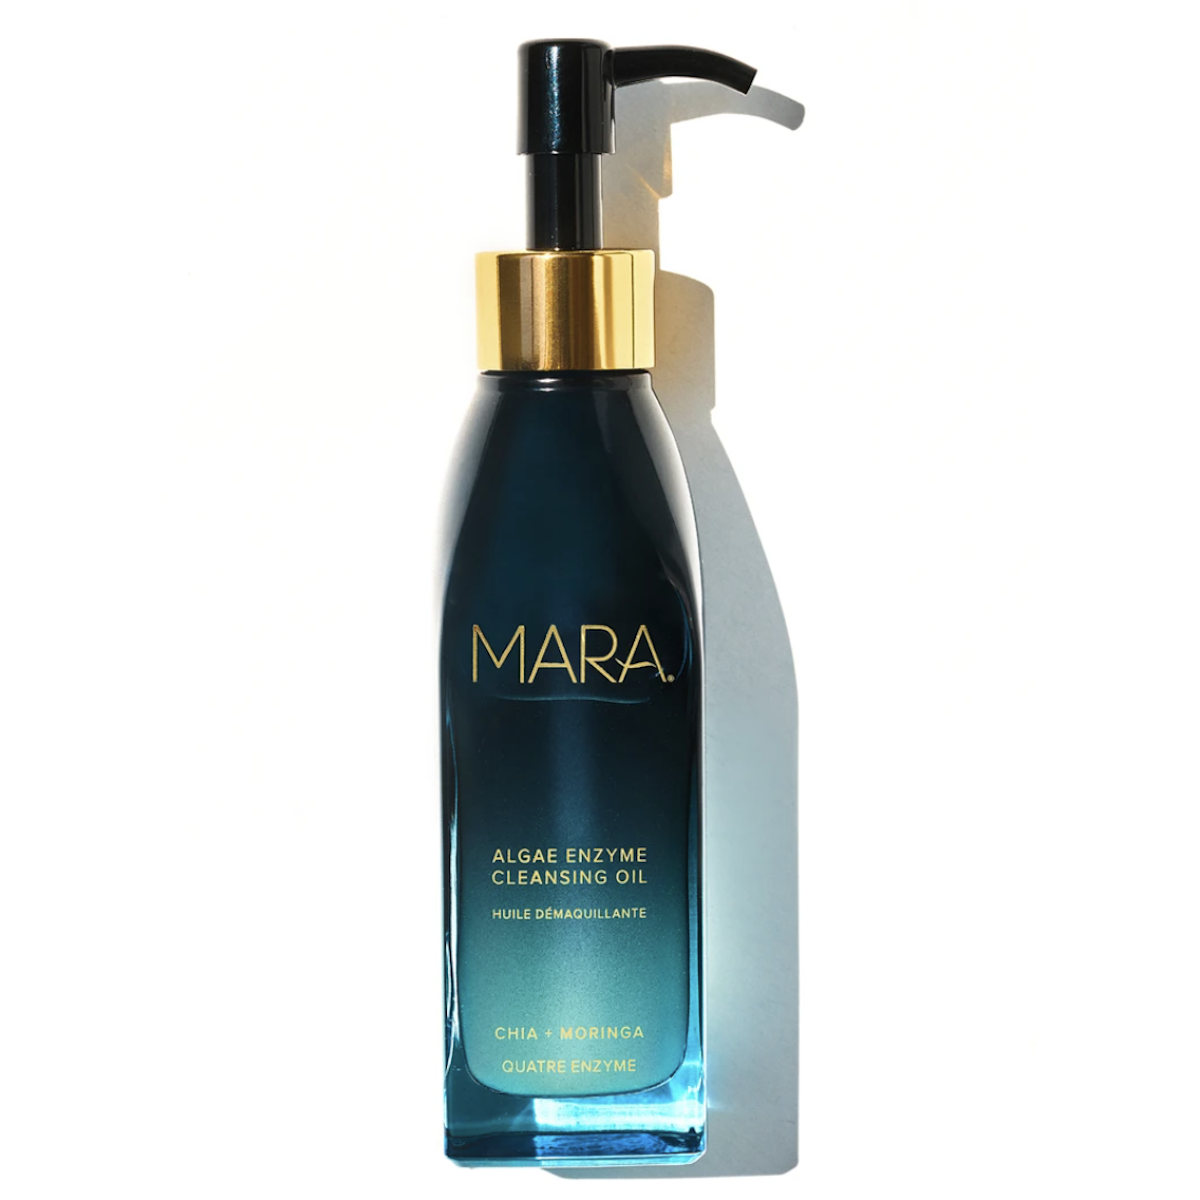 MARA Cleansing Oil, blue and teal clear bottle